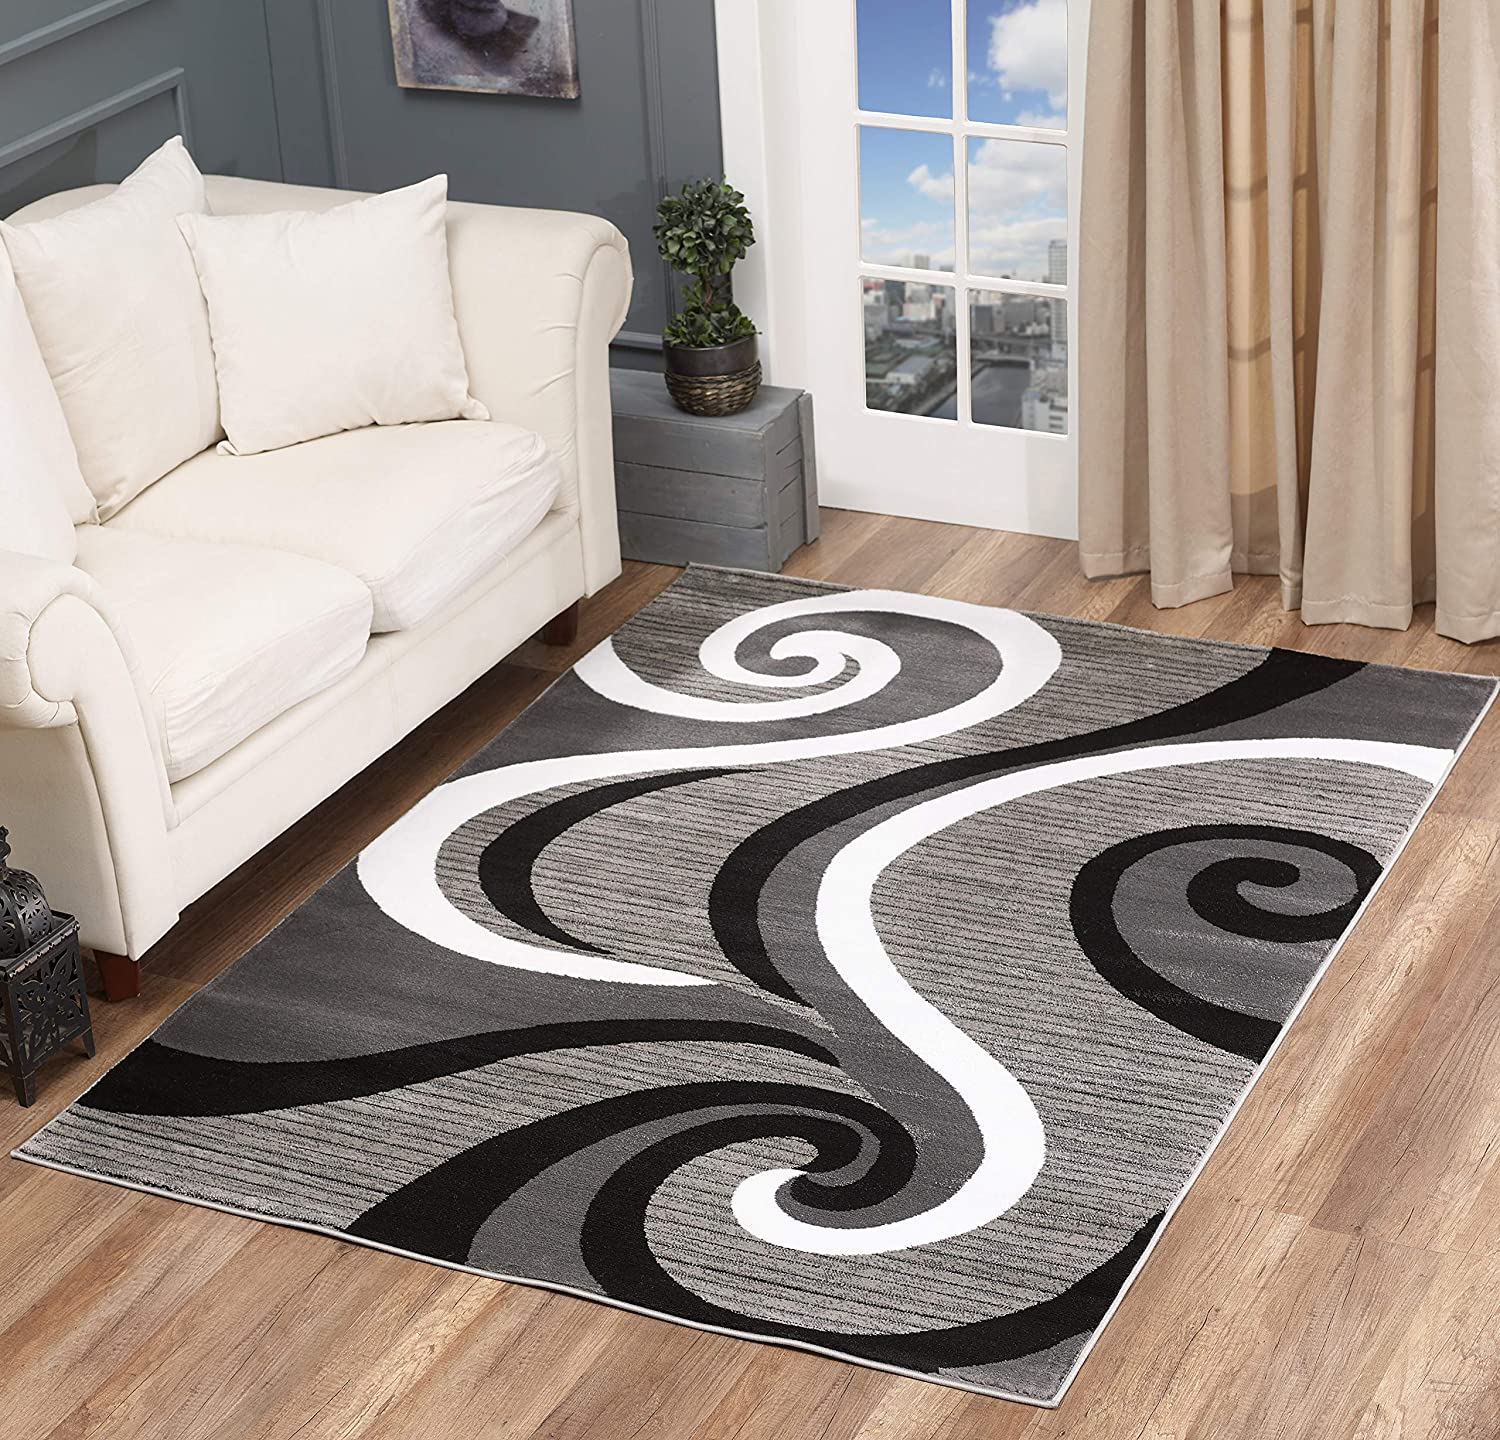 Buy Glory Rugs Modern Area Rug 5x7 Black Gray Modern Carpet Bedroom Living Room Contemporary Dining Accent Sevilla Collection 4817A (Grey Black) Online in Indonesia. B07QYQZXSR